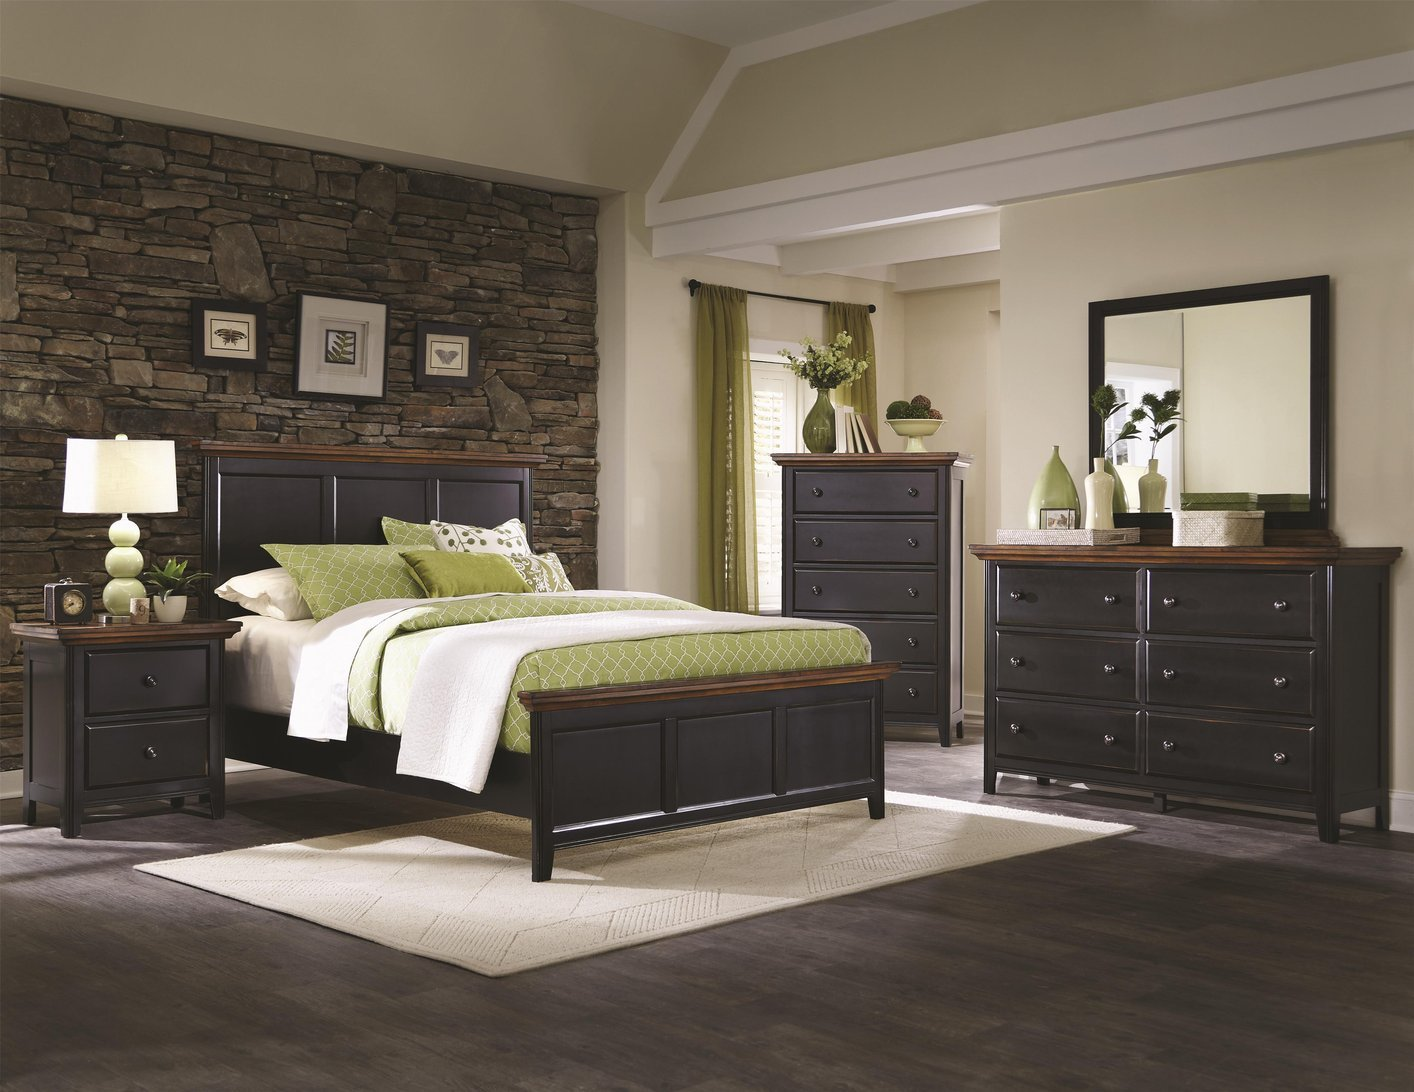 black wood california king size bed - California King Size Bed Frame